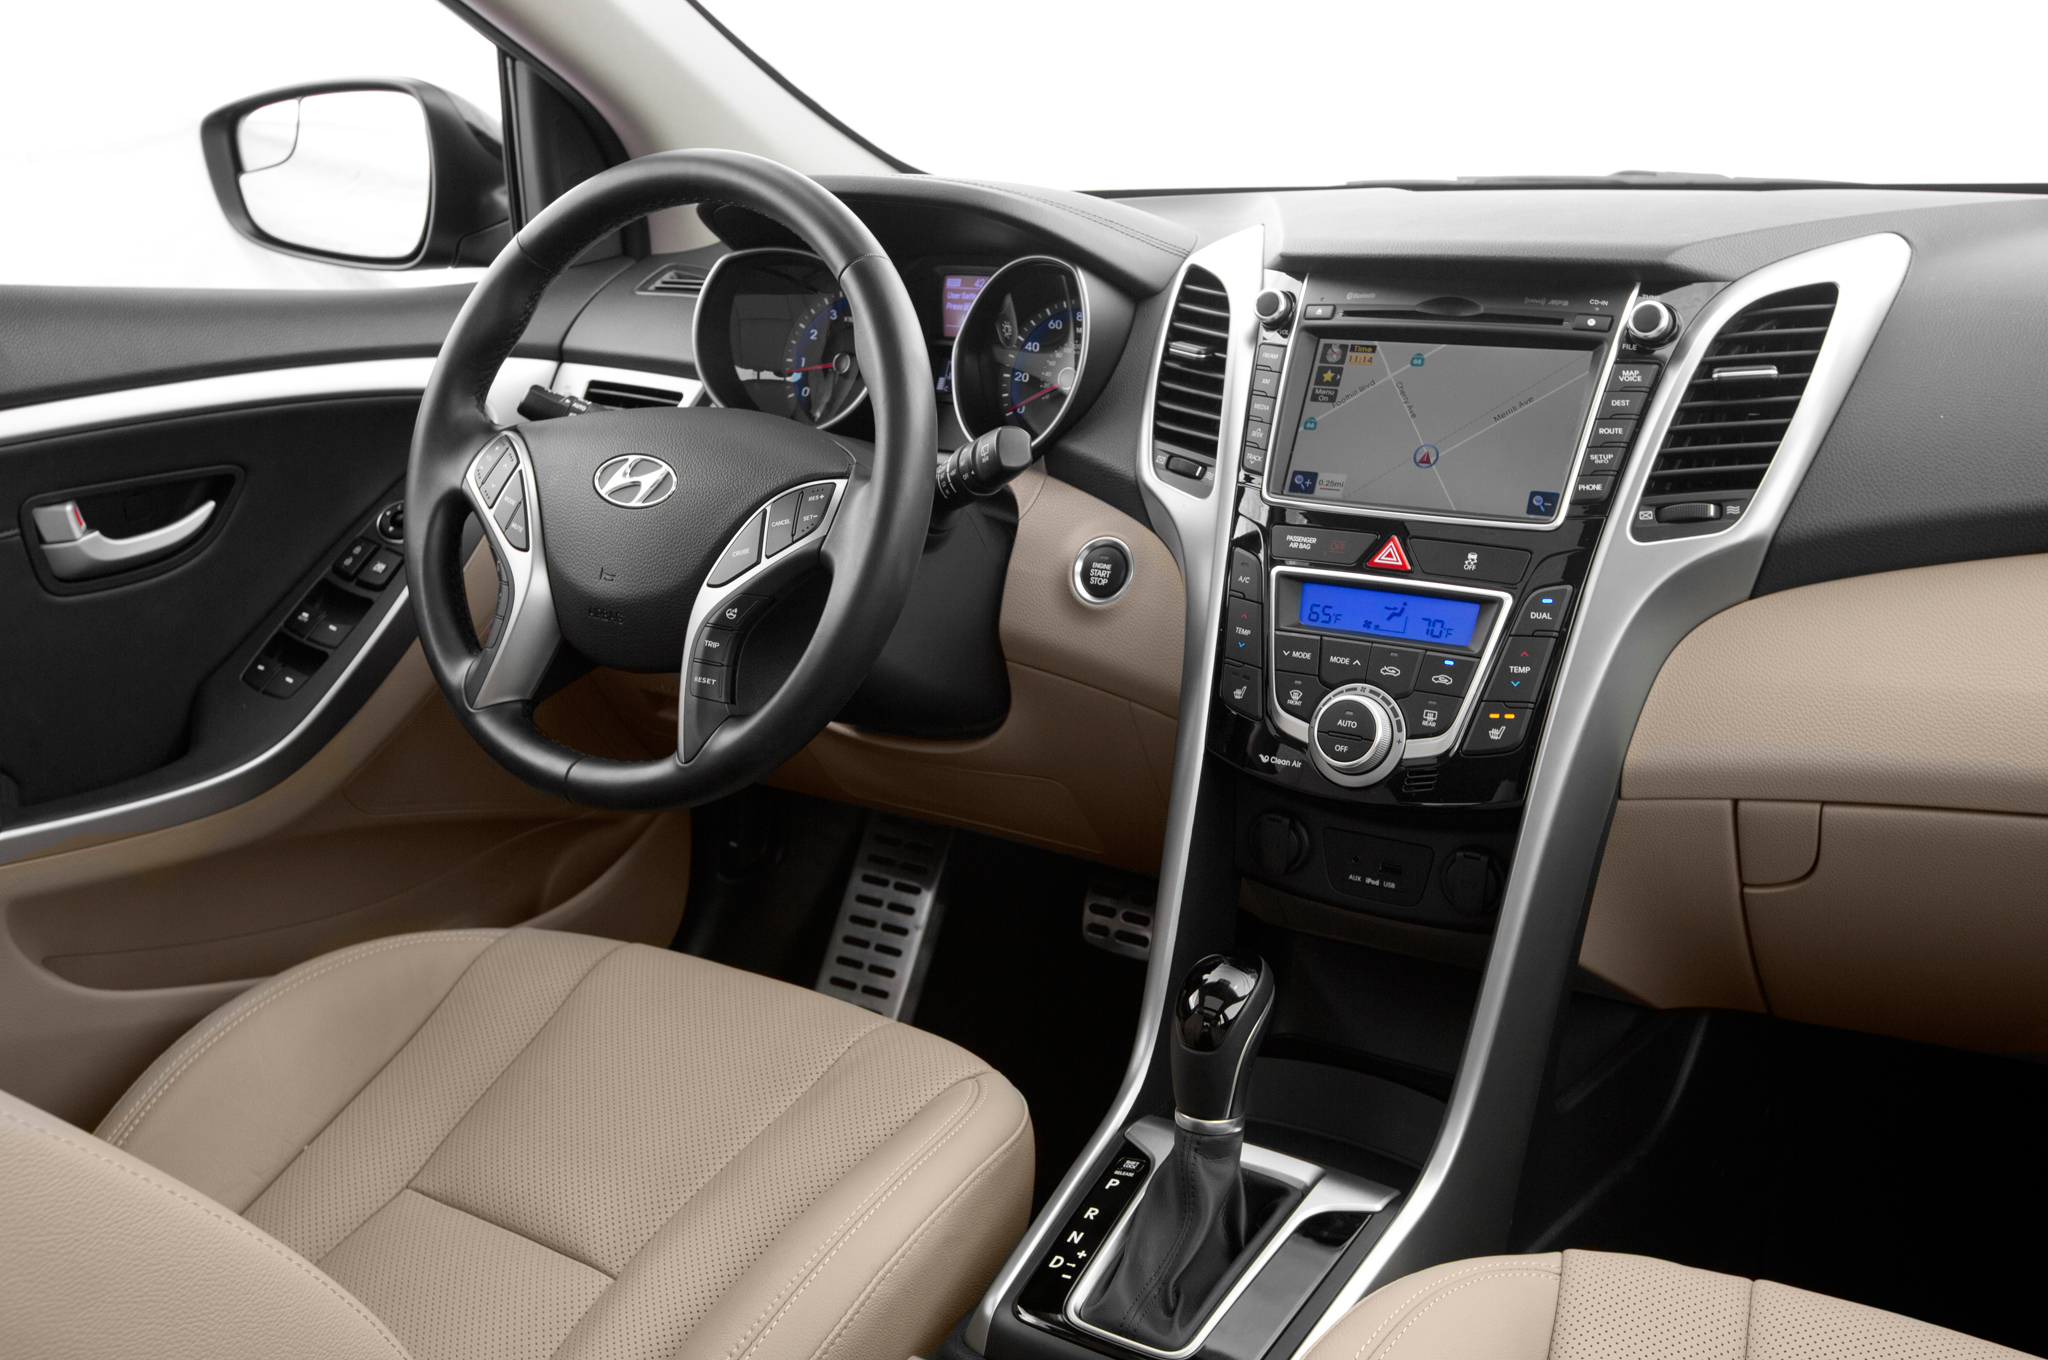 elantra interior autousagee used photo usagee ca vehicule hyundai sale en for